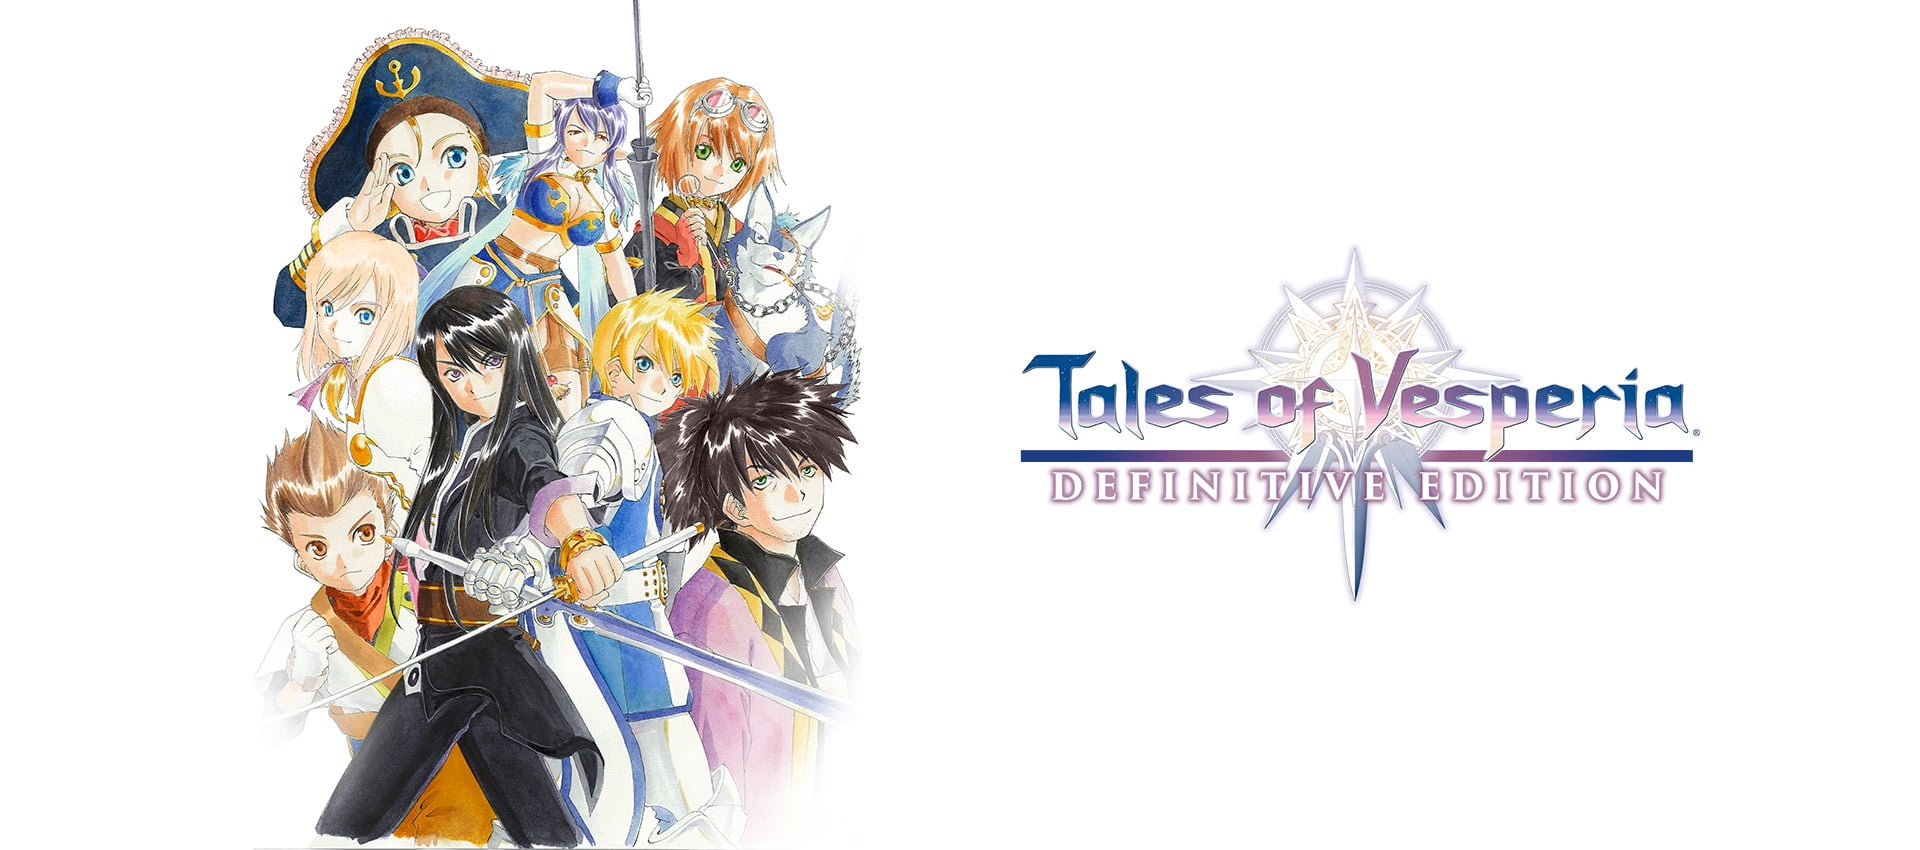 Tales of Vesperia PS4 Version Full Game Free Download